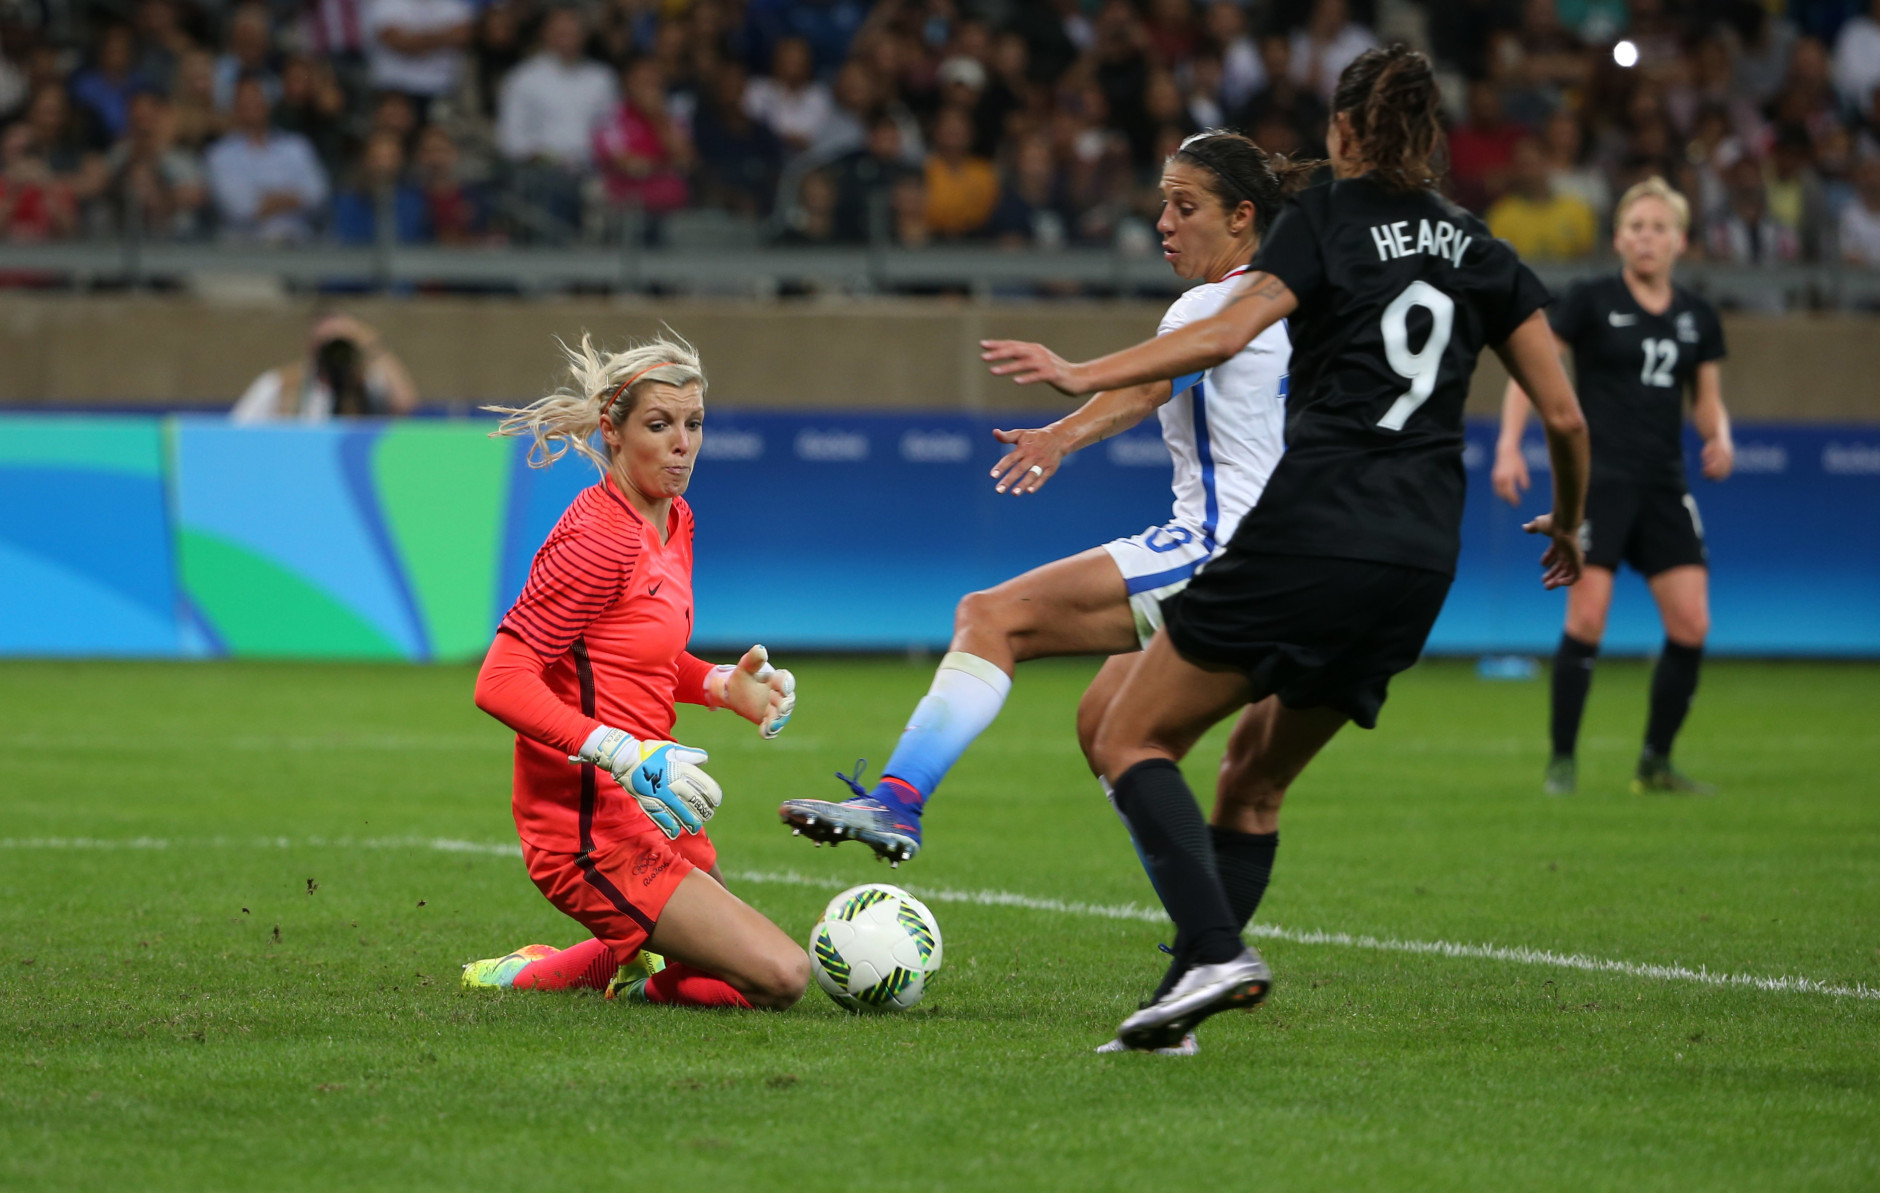 New Zealand goalkeeper Erin Nayler, left, and Amber Hearn watch the ball as United States' Carli Lloyd, center, tries to score during a women's Olympic football tournament match at the Mineirao stadium in Belo Horizonte, Brazil, Wednesday, Aug. 3, 2016. United States won 2-0. (AP Photo/Eugenio Savio)